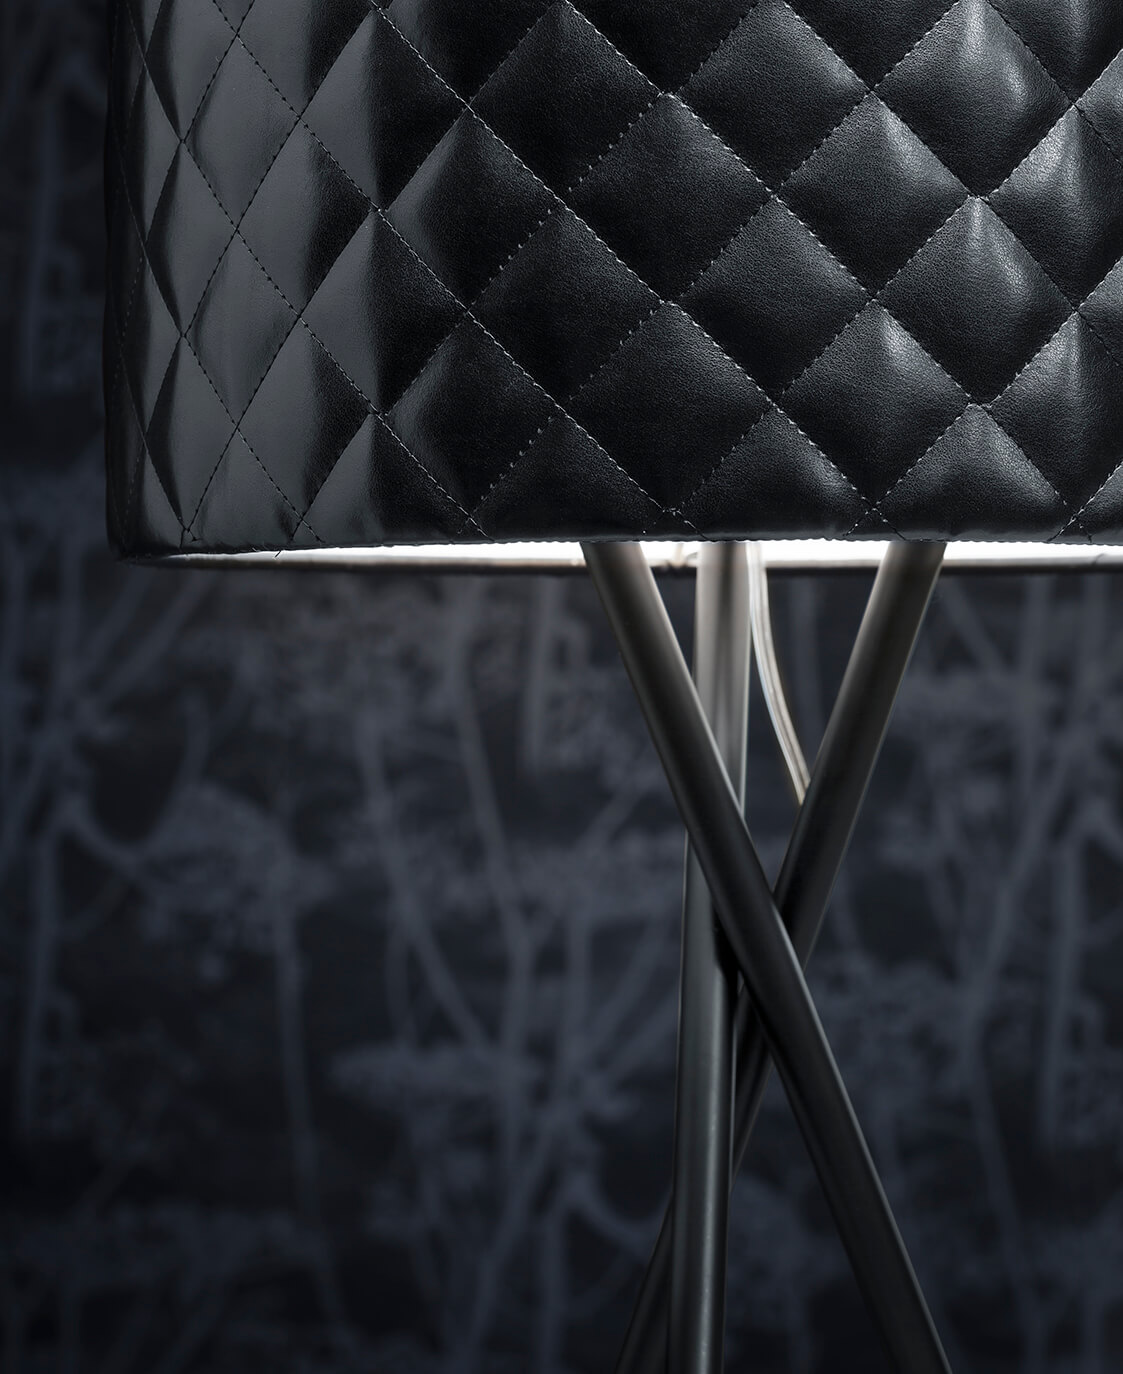 Mariutable4gallery.jpg